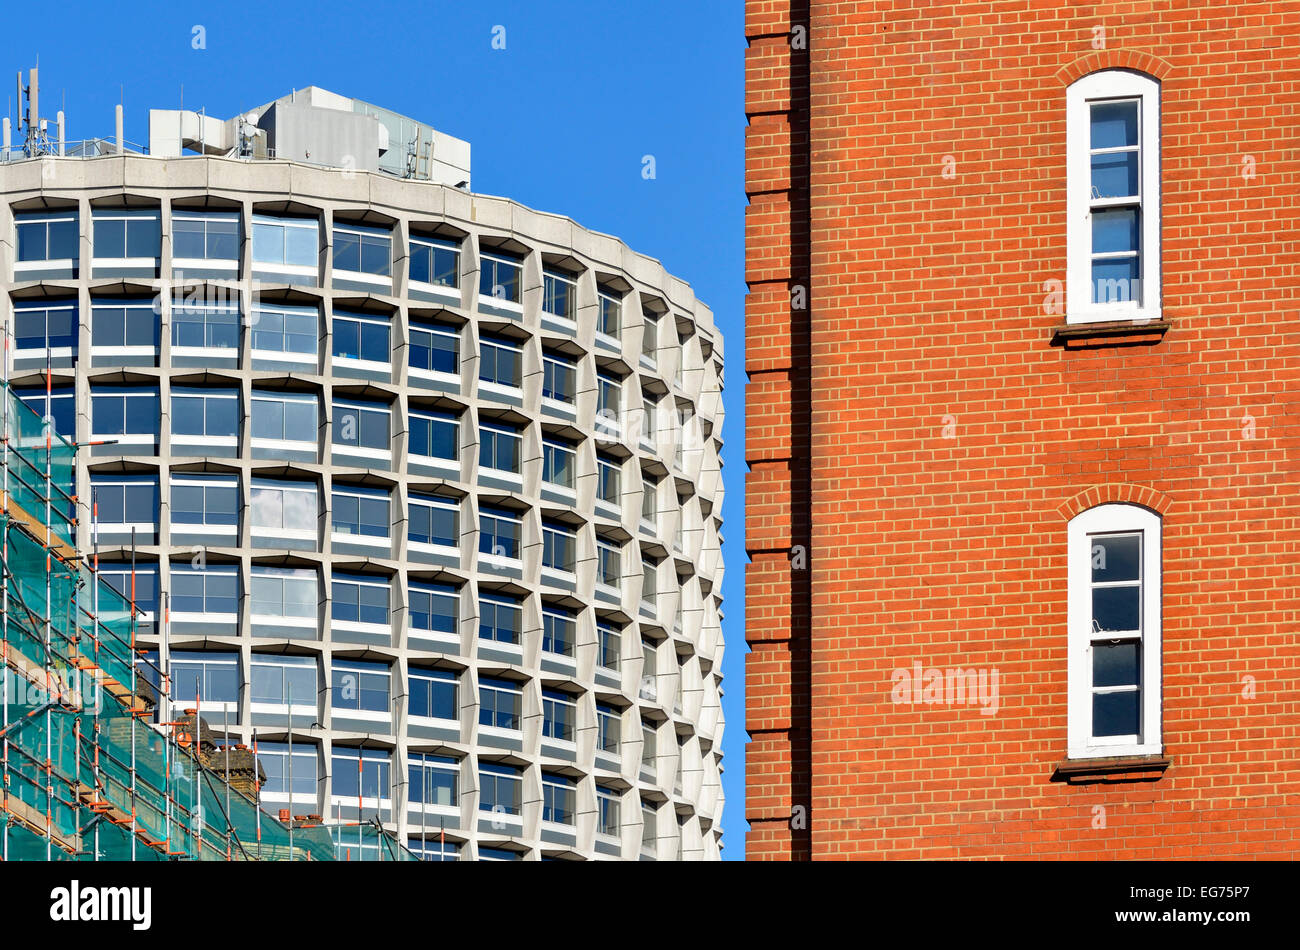 London, England, UK. One Kemble Street (WC2B 4AN) or 'Space House' (arch: R Seifert & Partners; 1966) - Stock Image